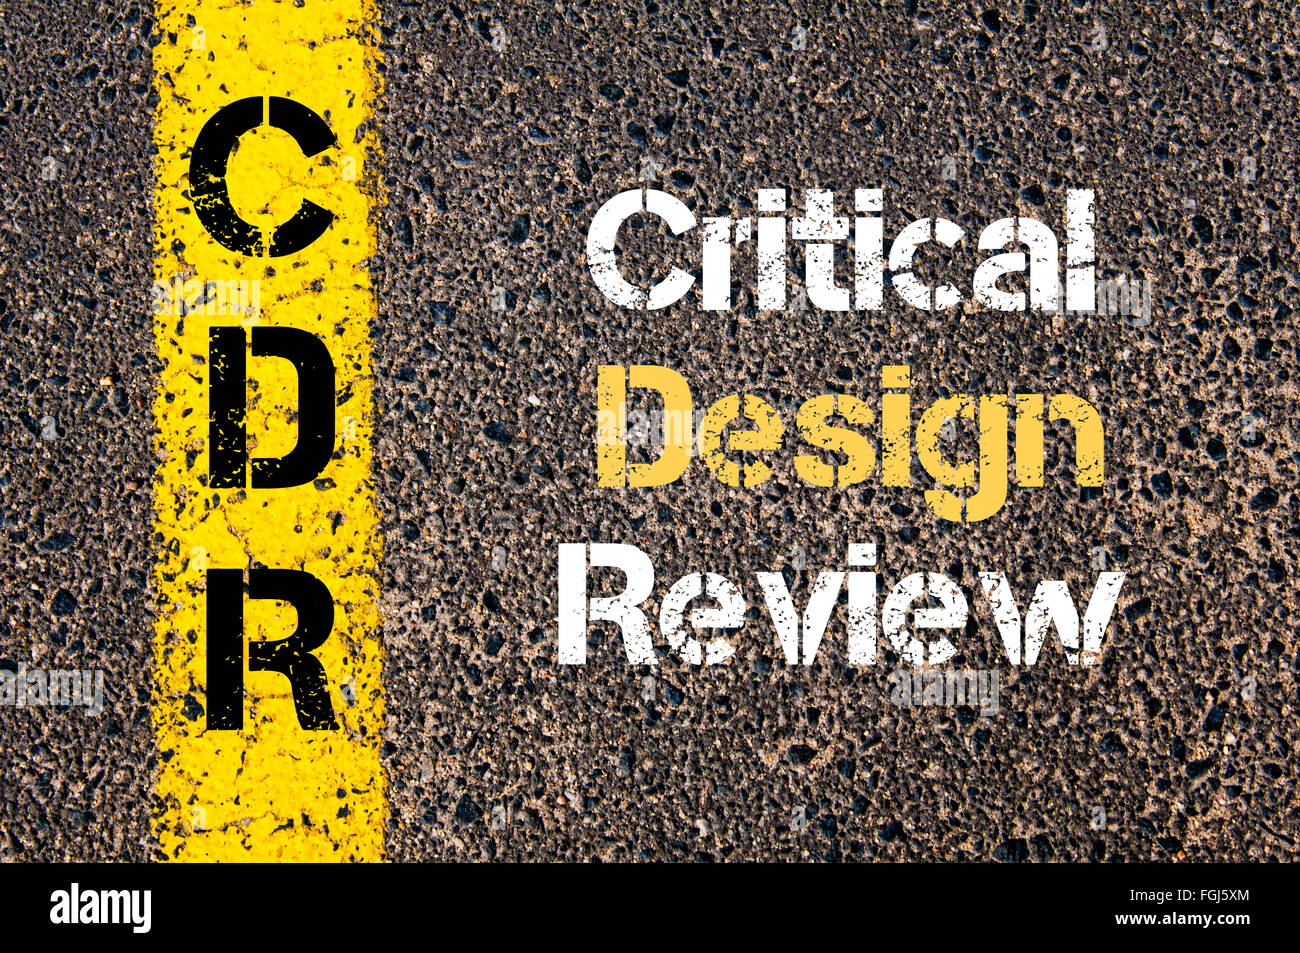 Concept image of Business Acronym CDR Critical Design Review written over road marking yellow paint line - Stock Image